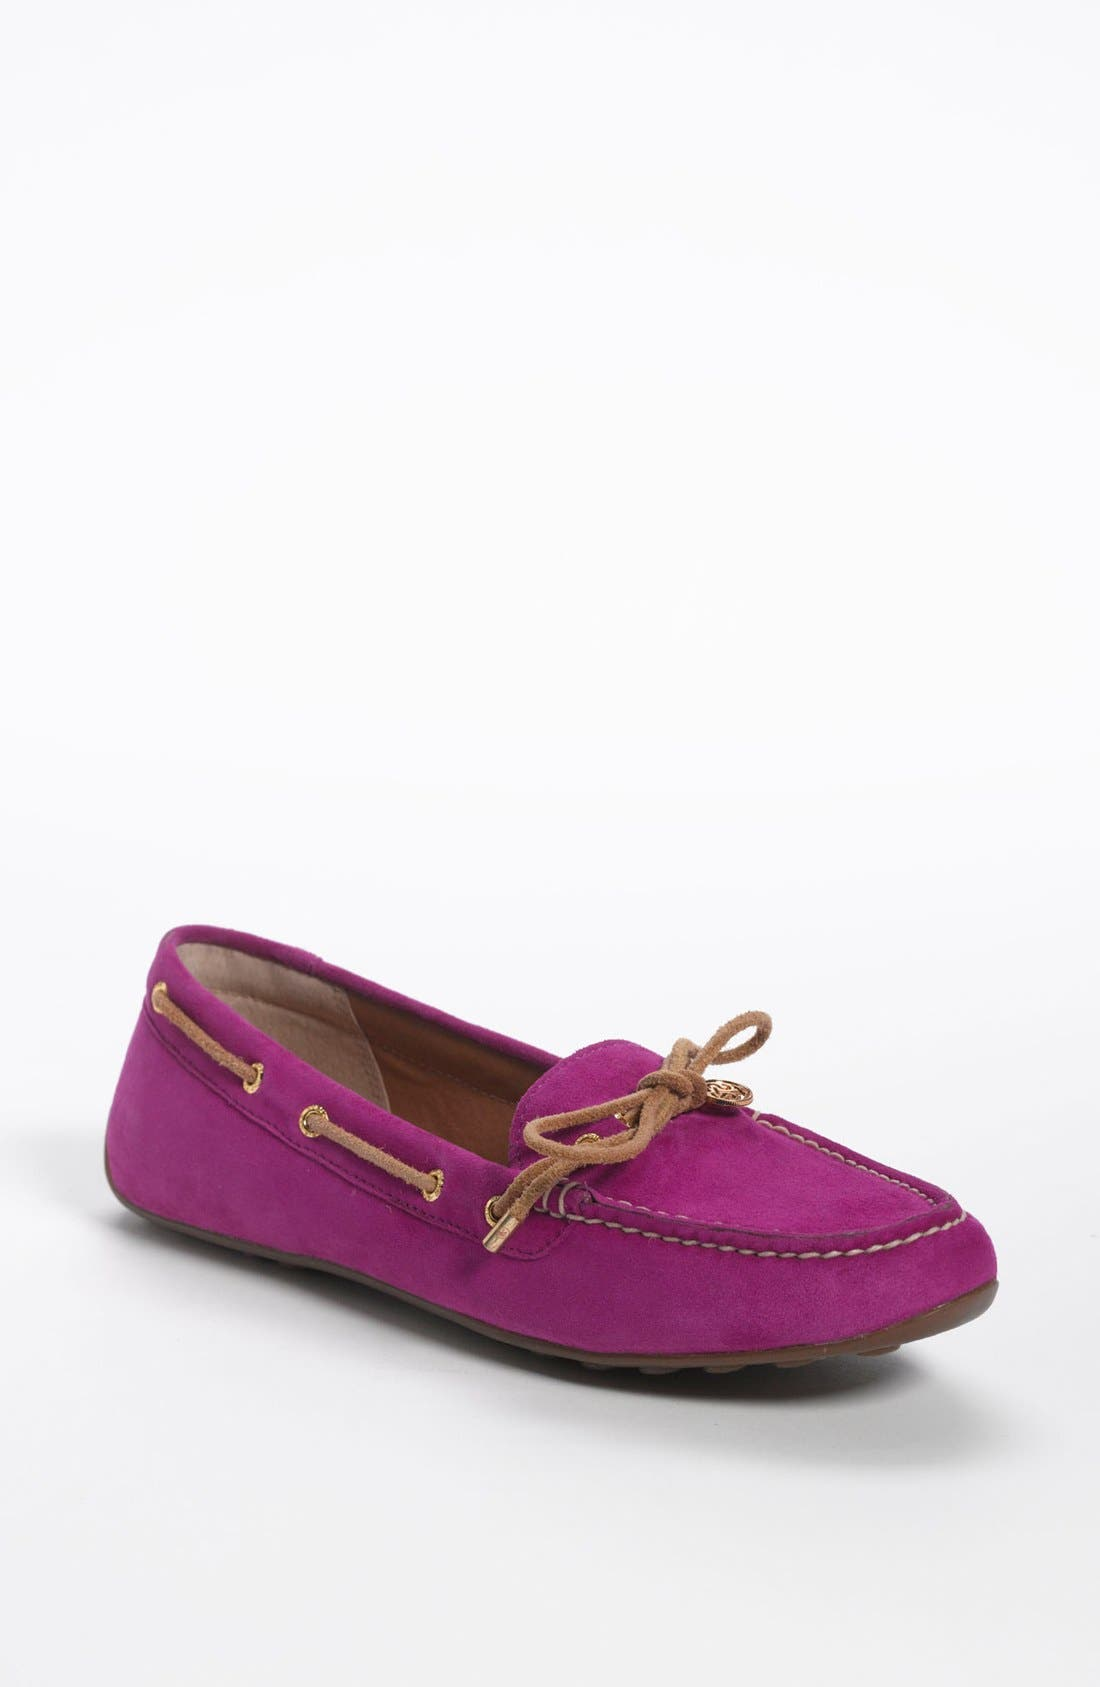 Alternate Image 1 Selected - Sperry Top-Sider® 'Laura' Moccasin